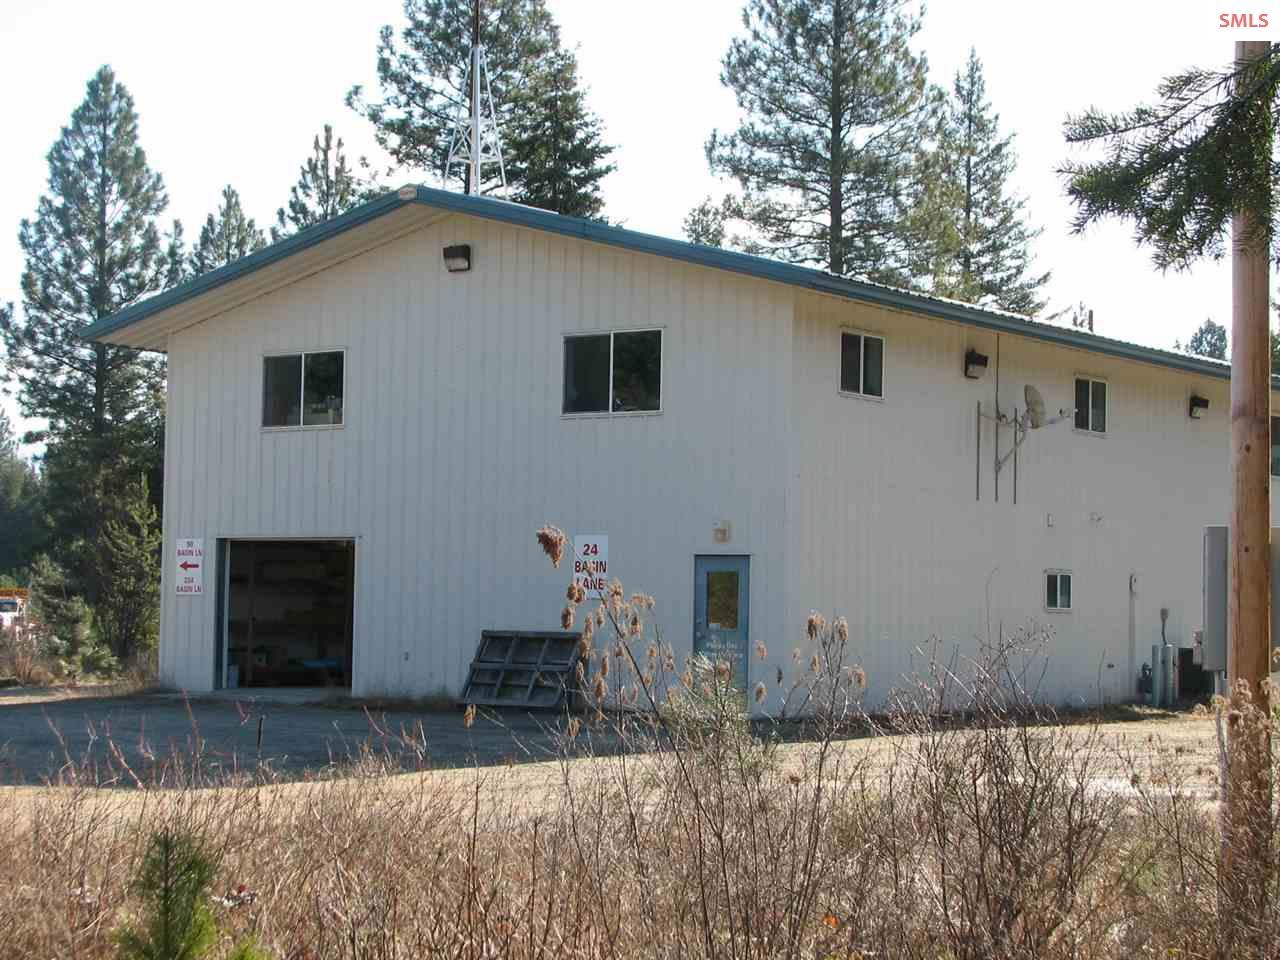 moyie springs senior personals Moyie springs, id stats and demographics for the 83845 zip code zip code 83845 is located in northwest idaho and covers a slightly higher than average land area compared to other zip codes in the united states.